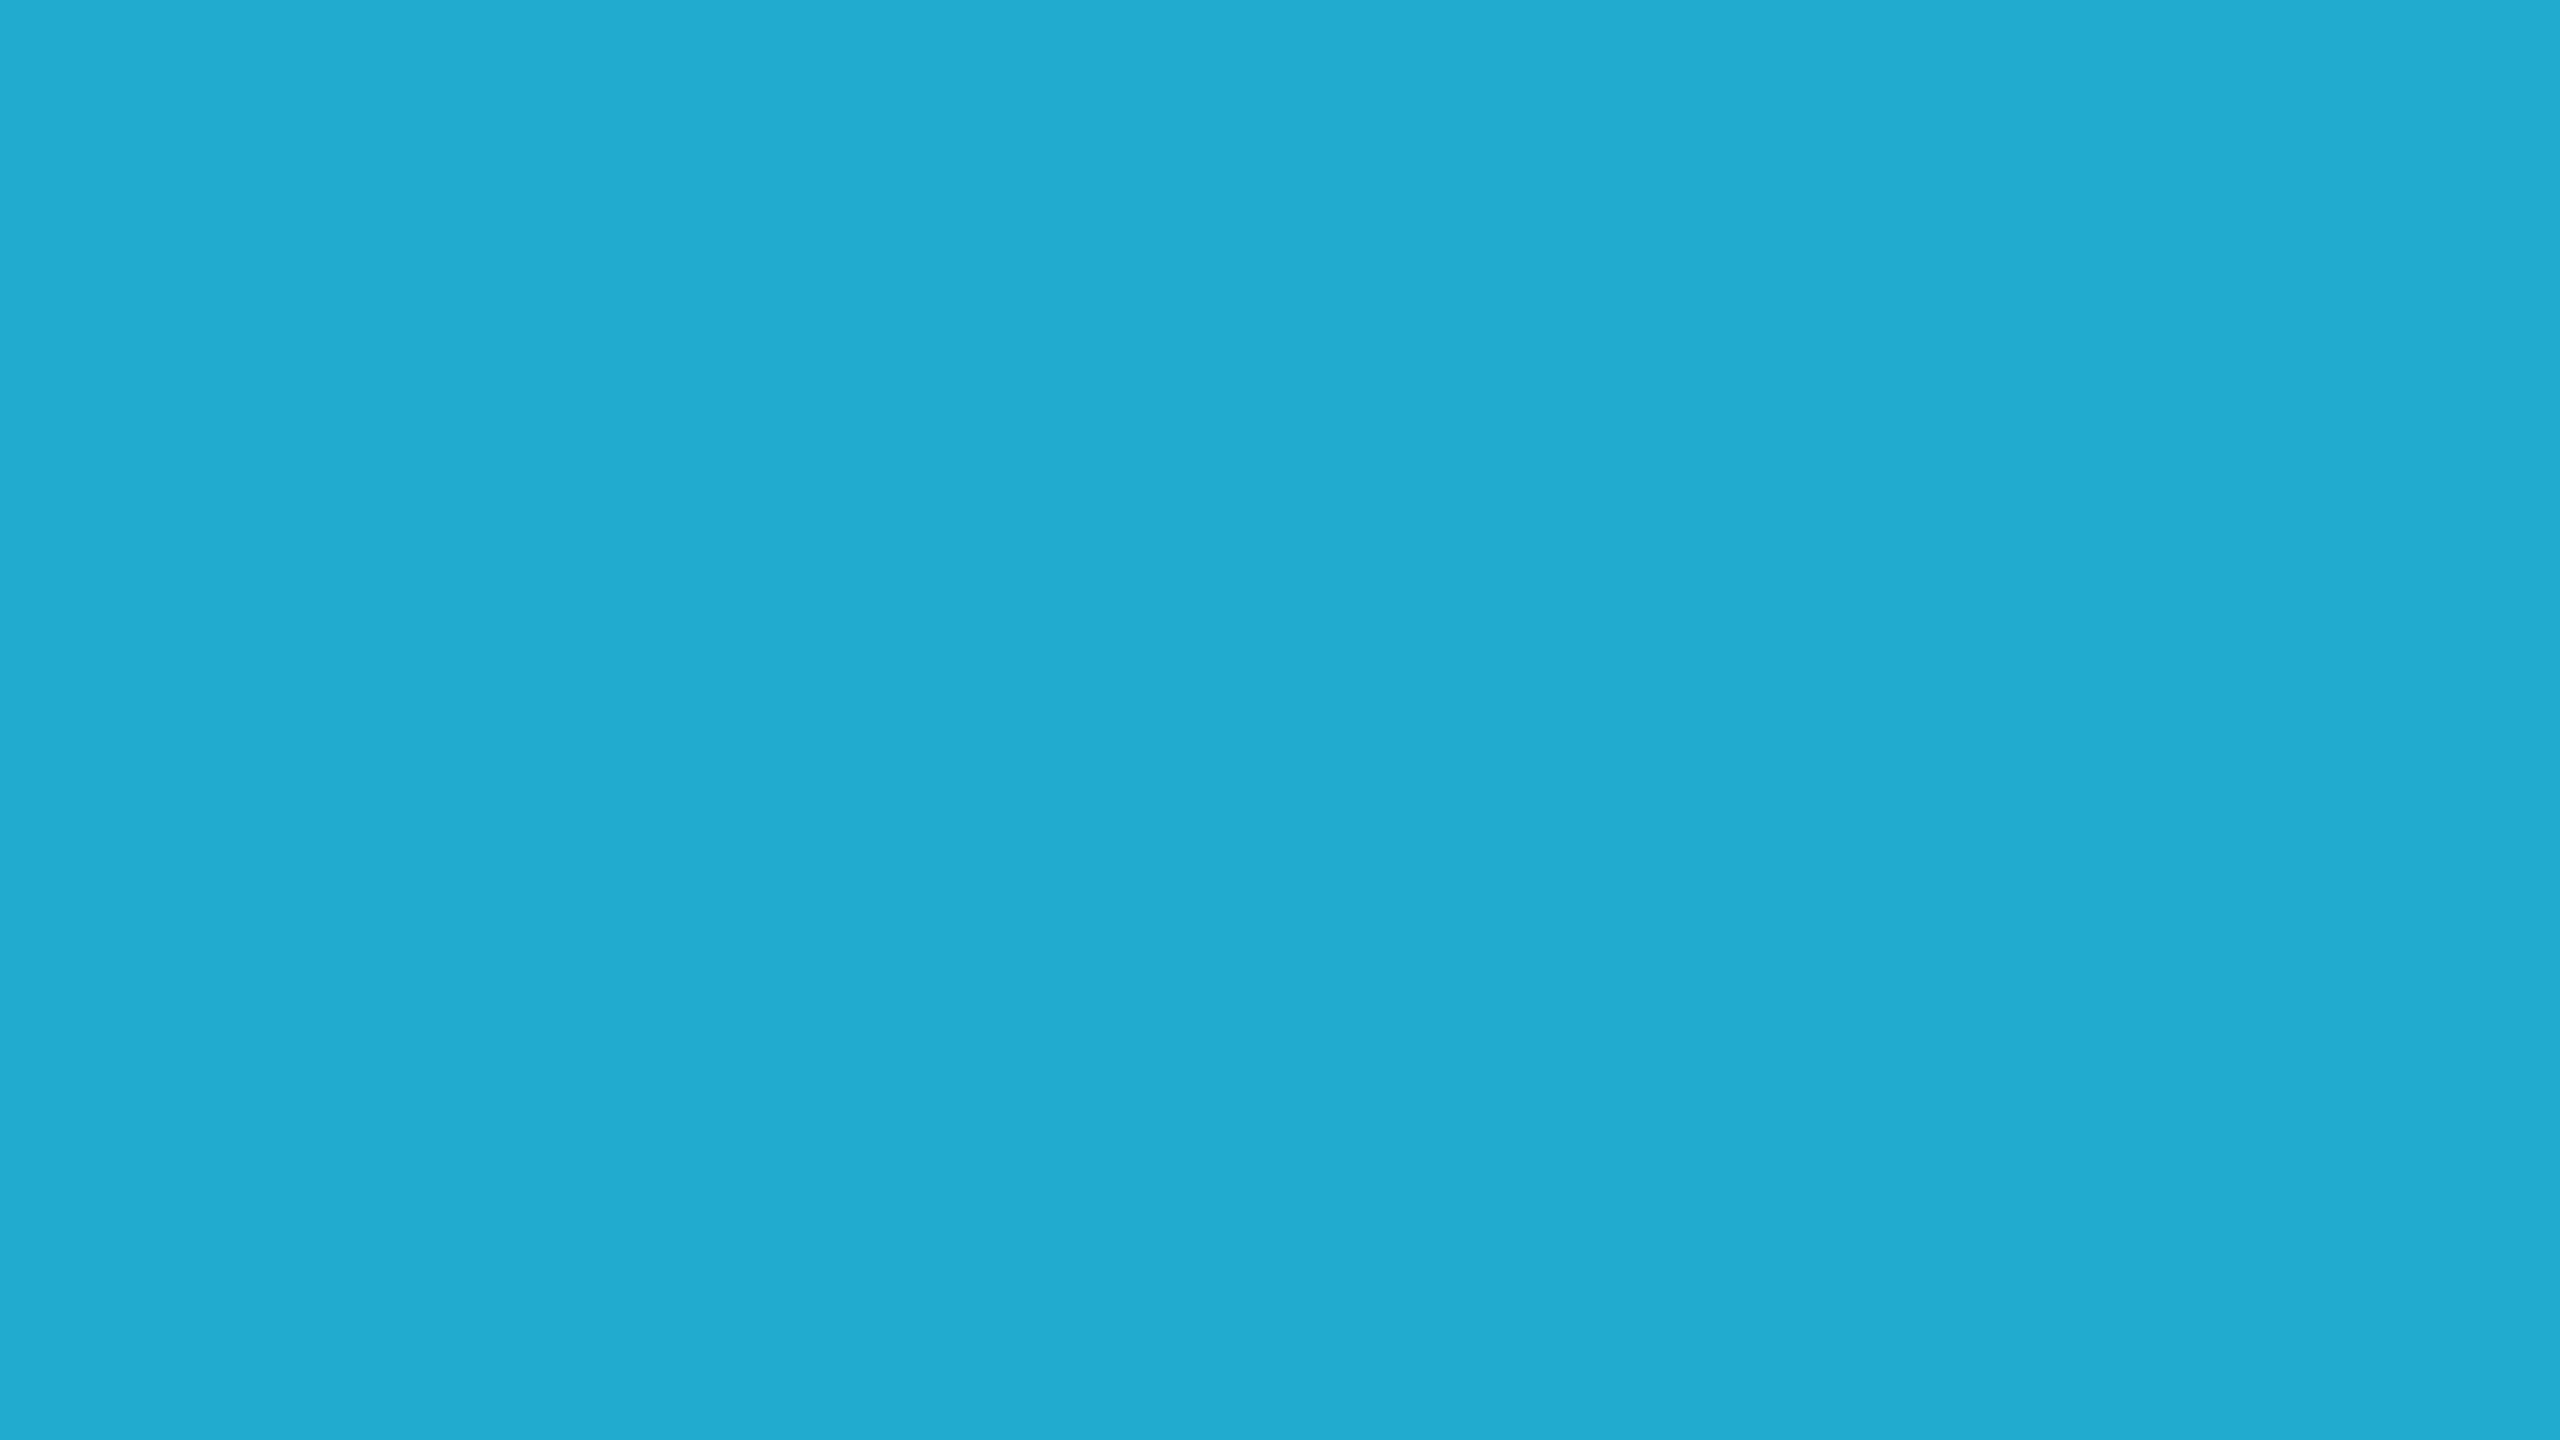 2560x1440 Ball Blue Solid Color Background